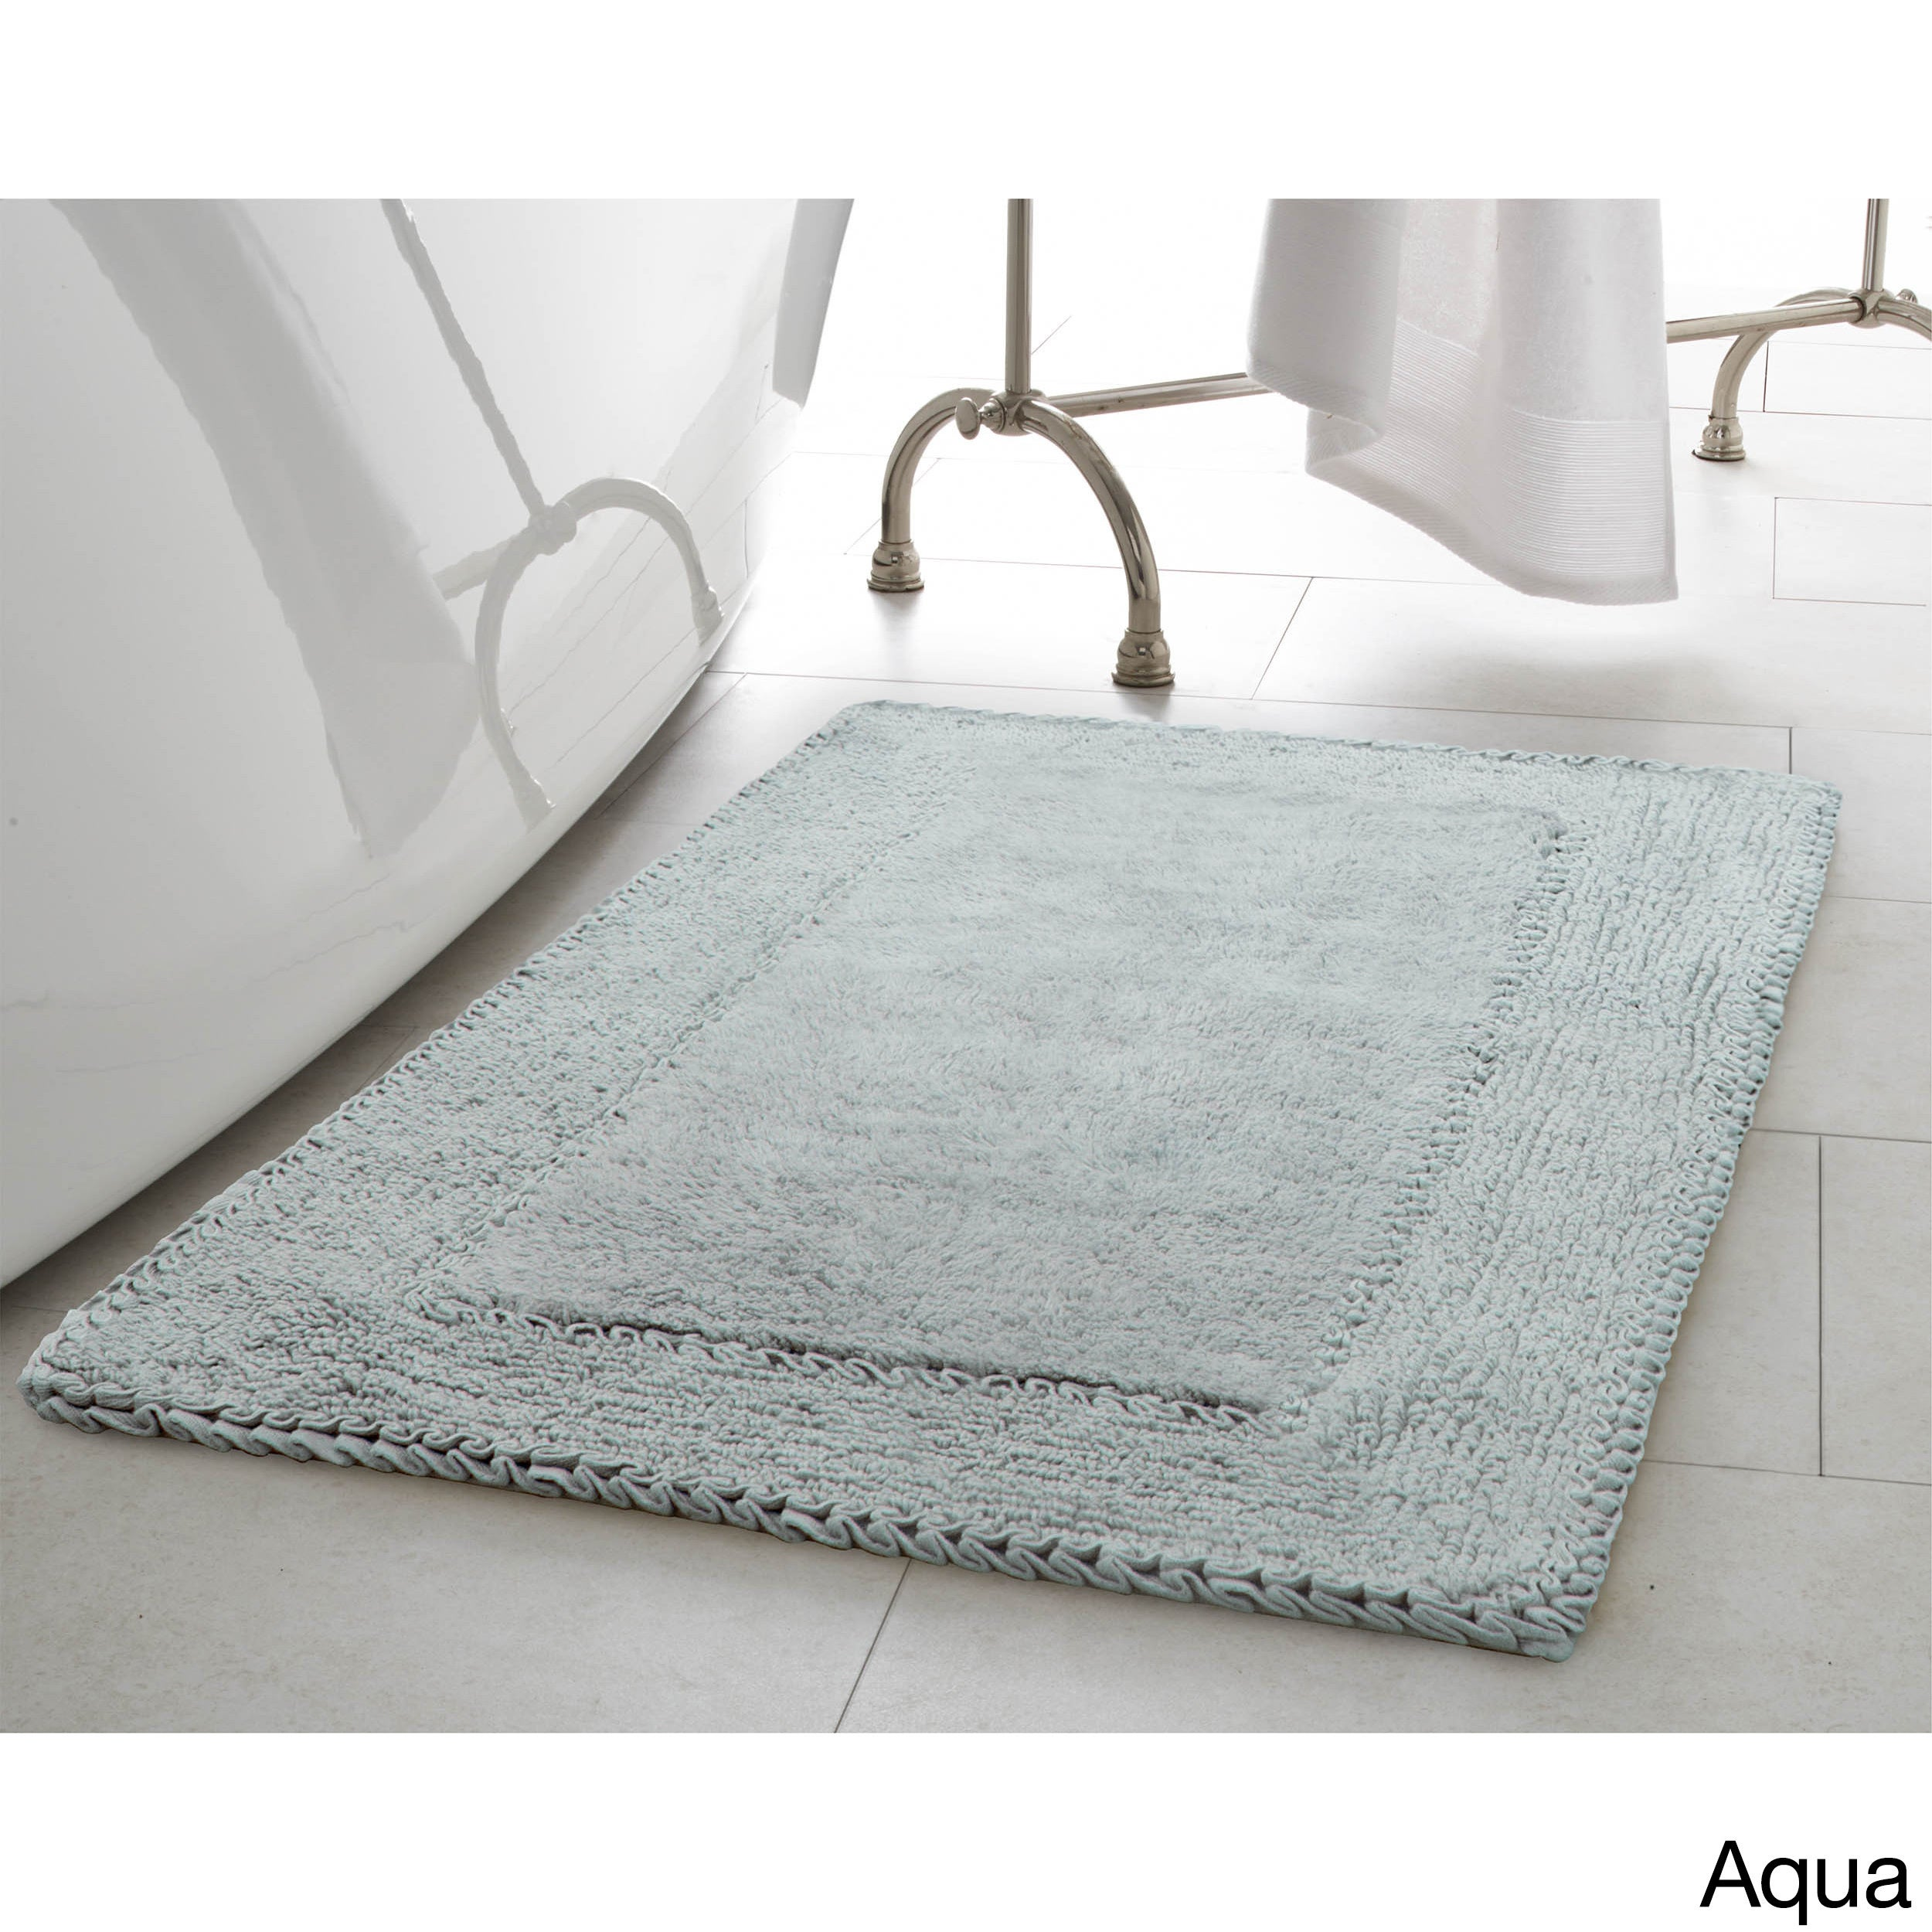 Shop Laura Ashley Ruffle Cotton 20 X 34 Inch Bath Rug   Free Shipping On  Orders Over $45   Overstock.com   14228309